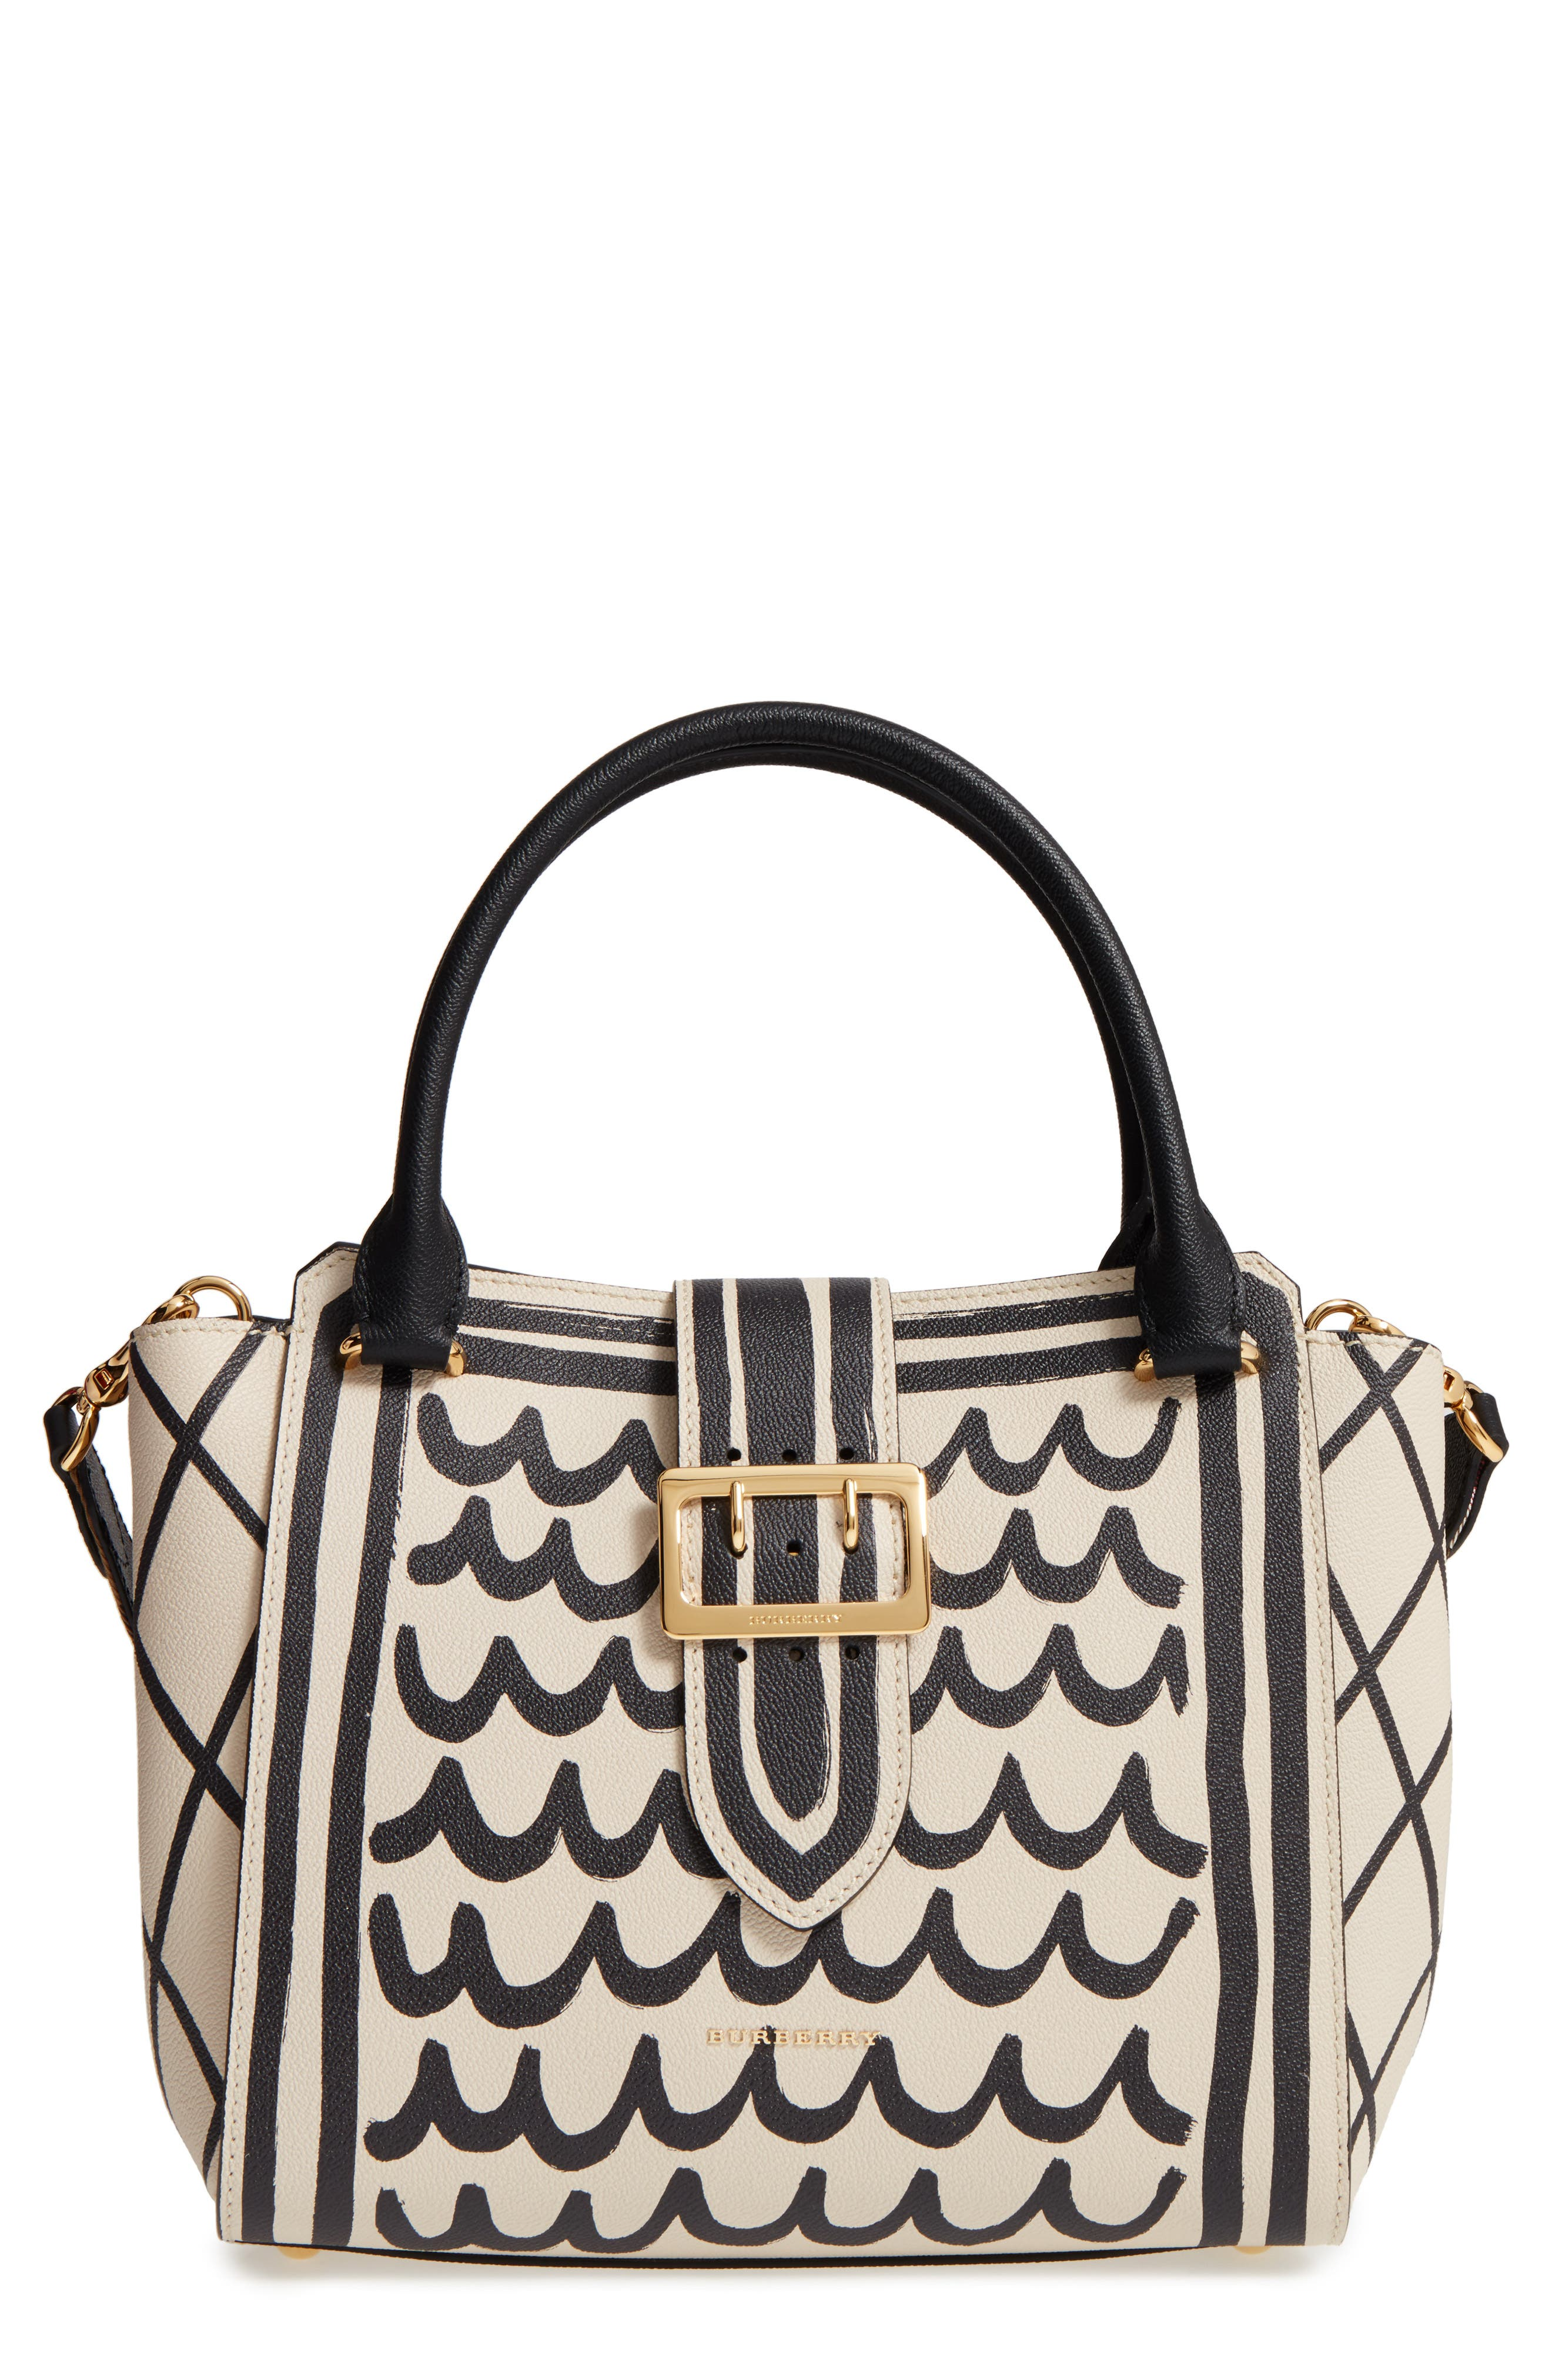 Burberry Medium Buckle Graphic Leather Tote